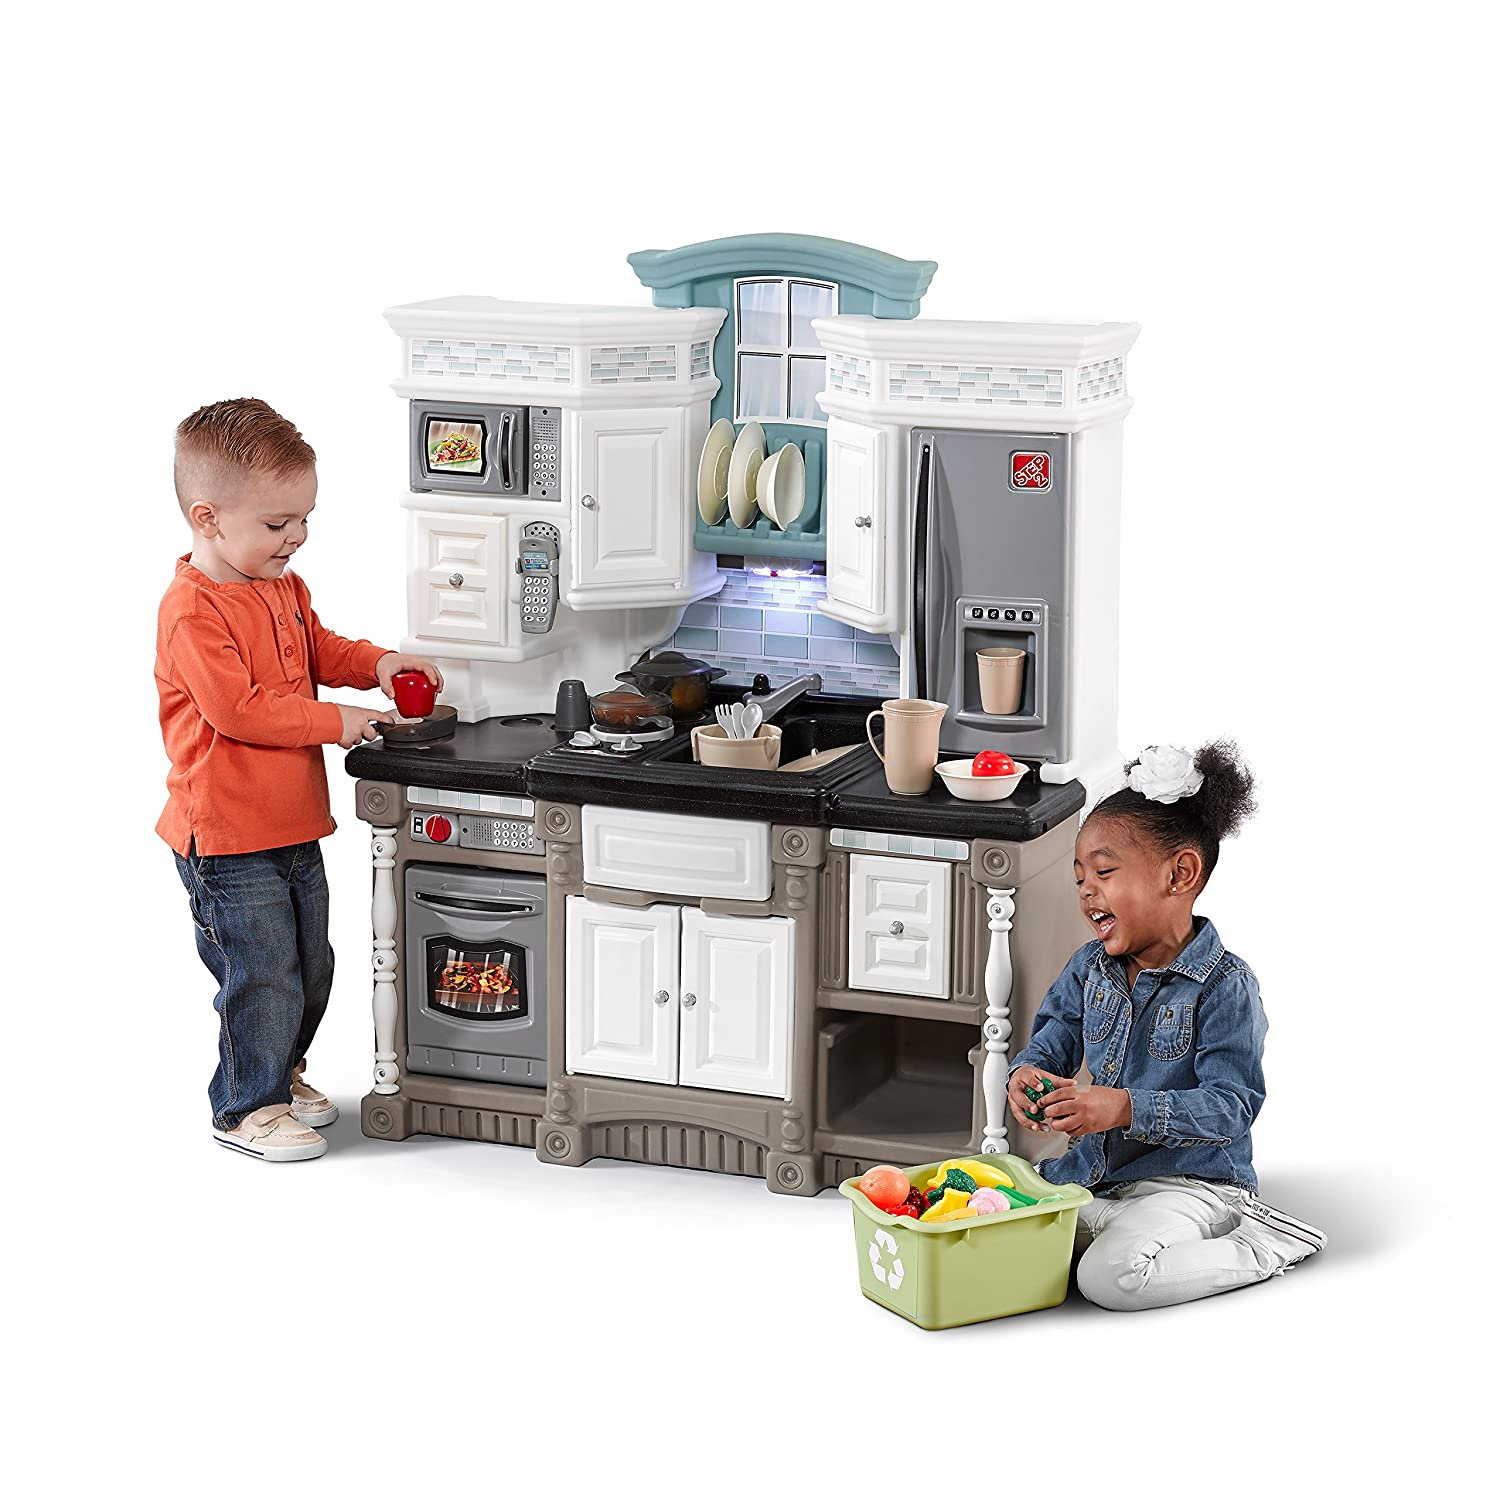 Amazon.com: Step2 LifeStyle Dream Kitchen Playset: Toys & Games